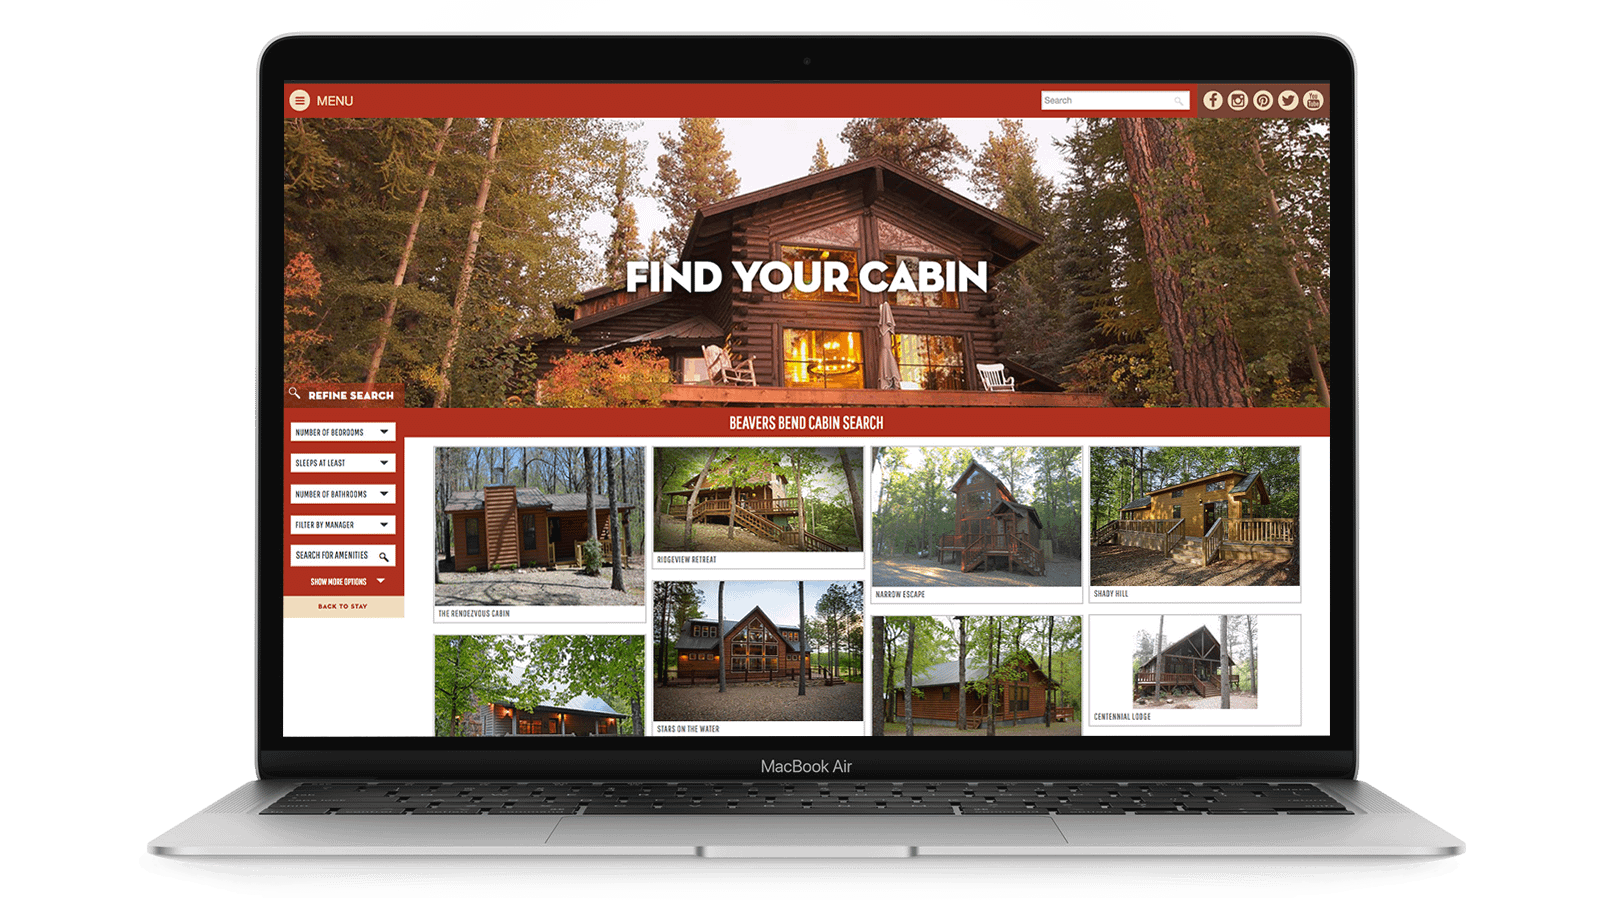 Find Your Cabin feature on the Visit McCurtain County website. Great branding and marketing.